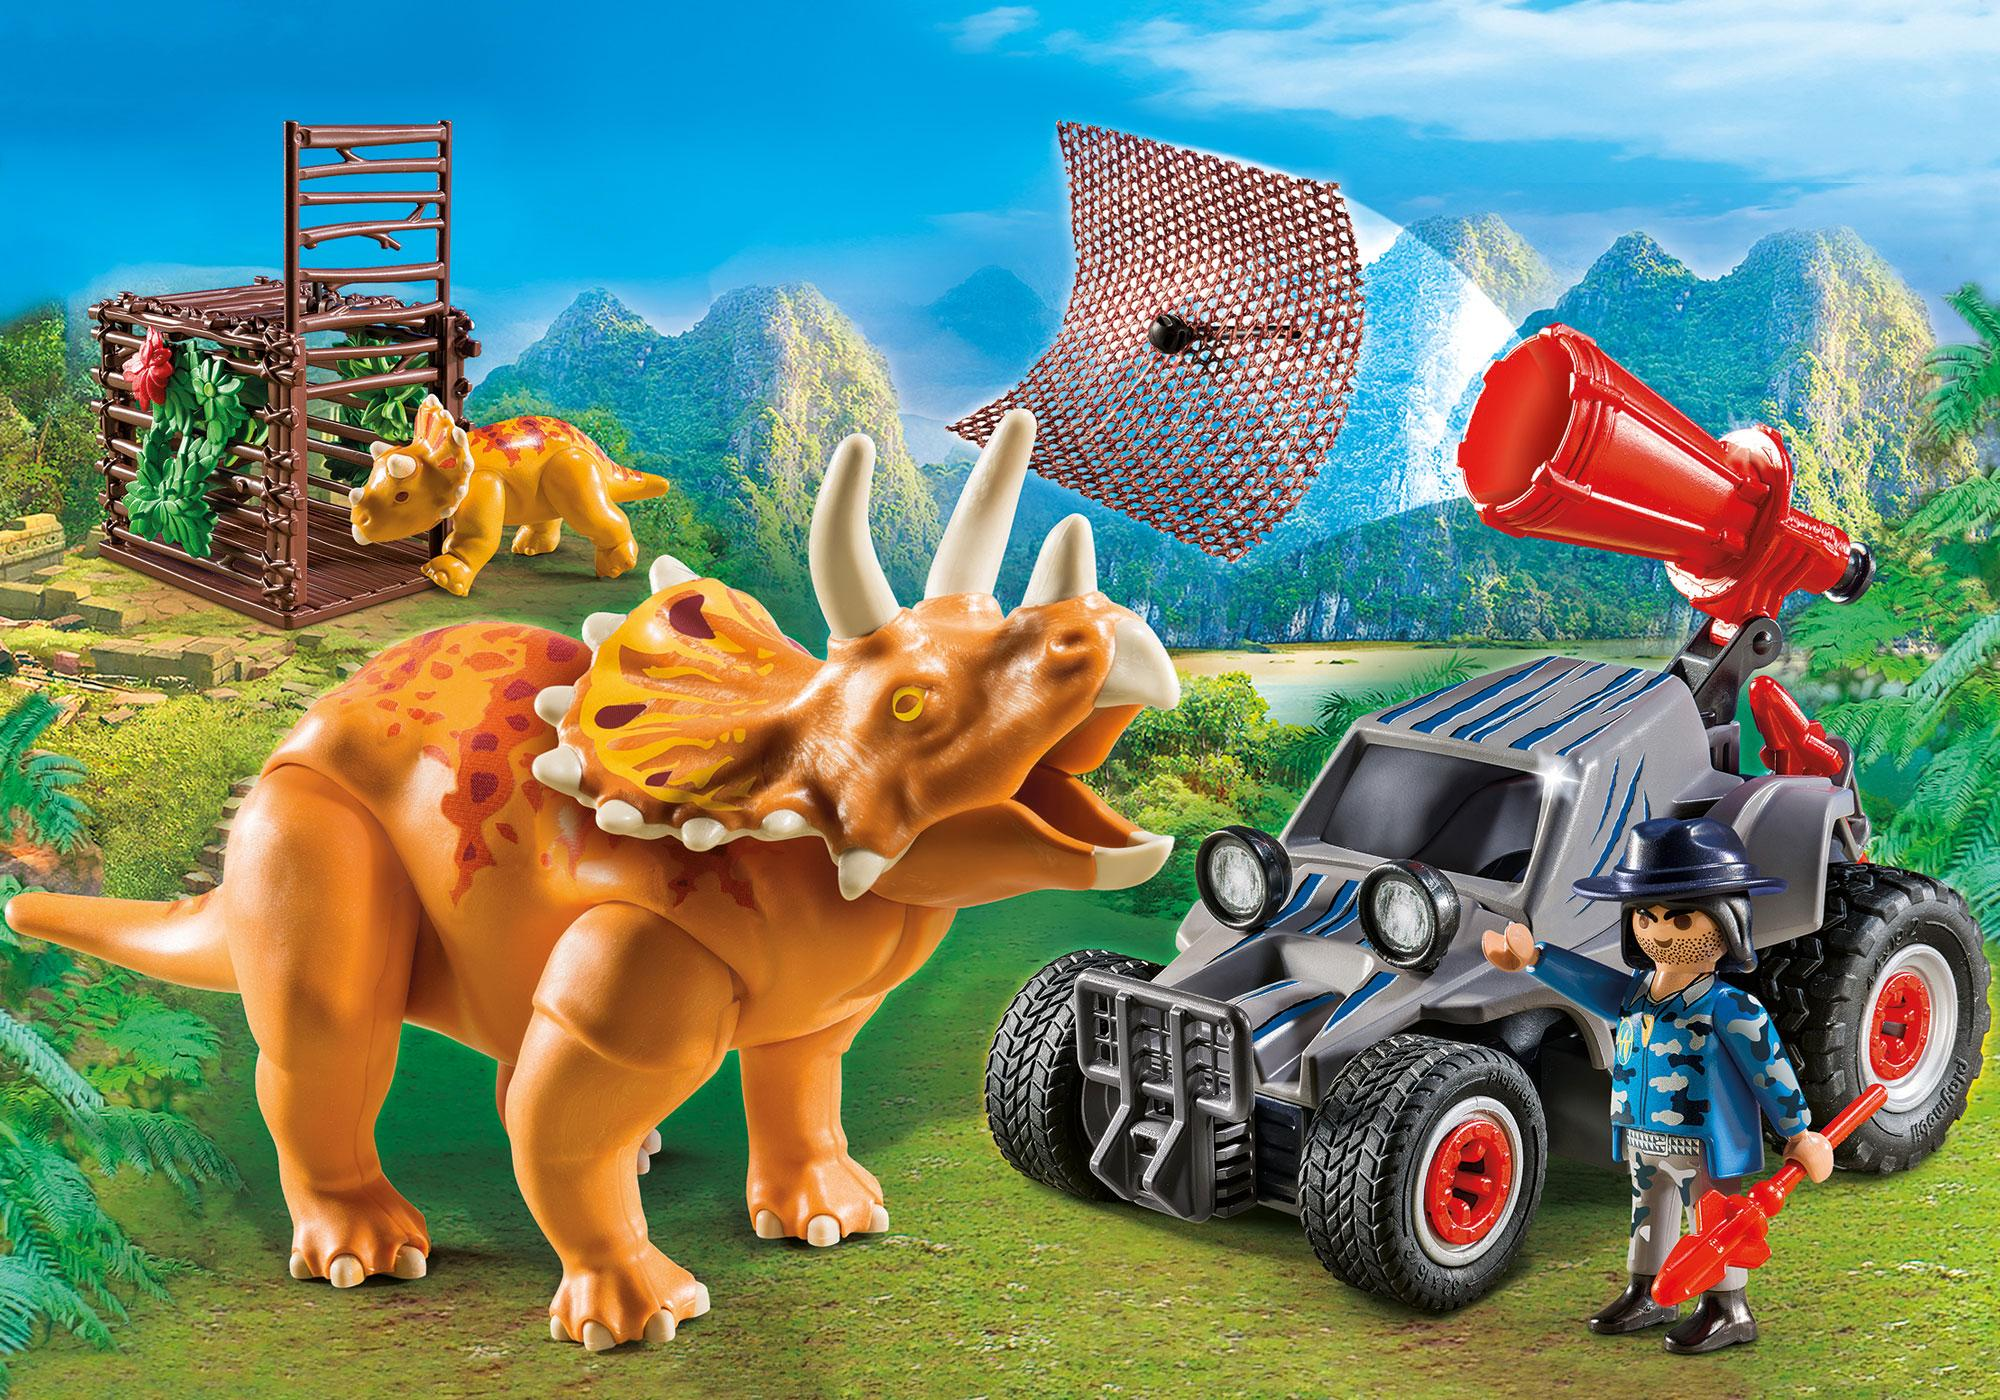 9434_product_detail/Coche con Triceratops